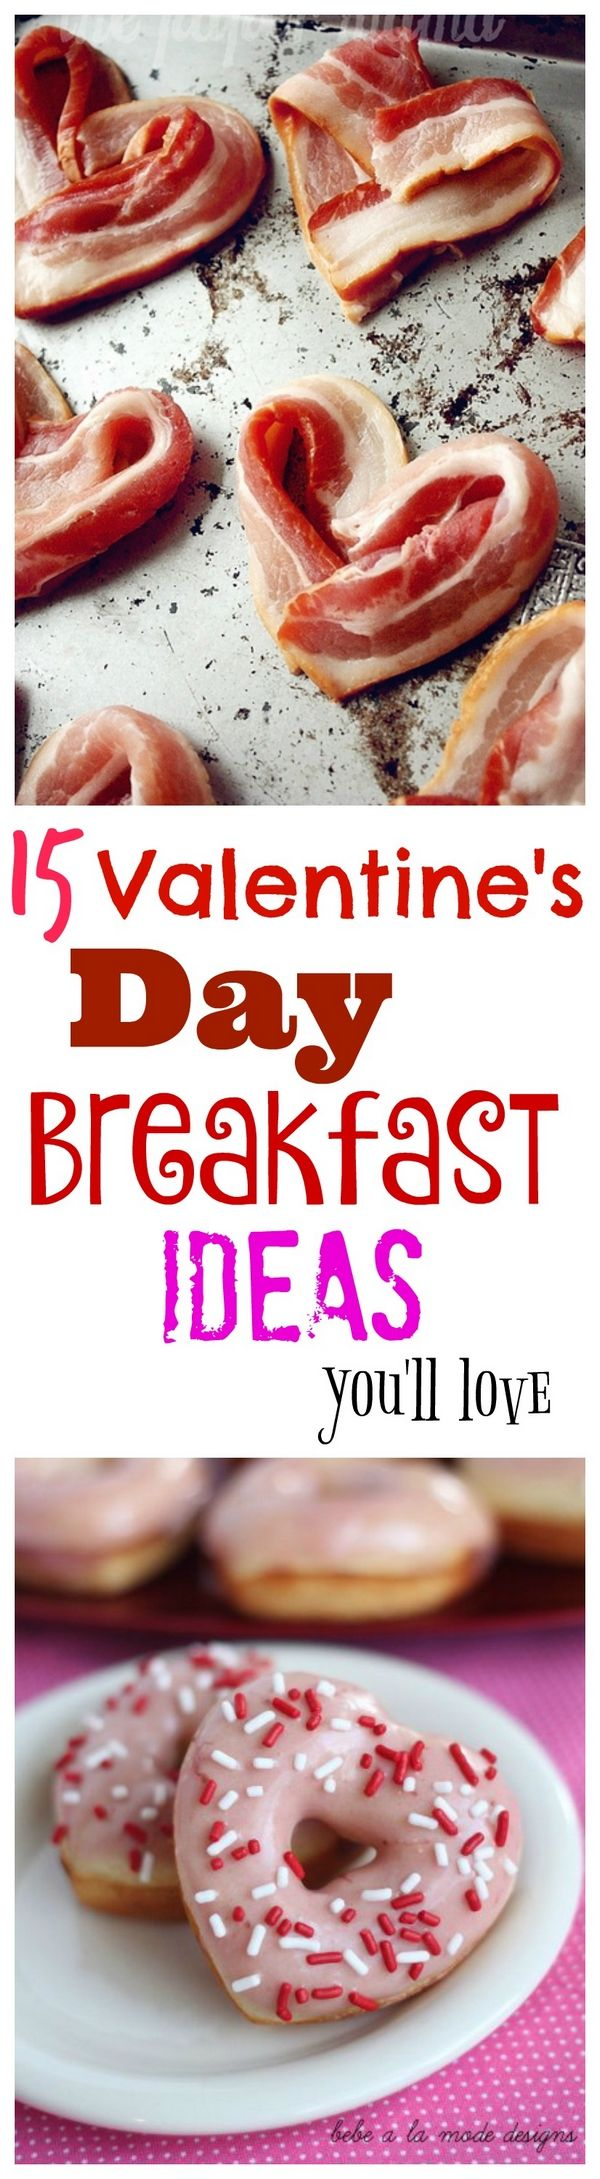 15 Valentine's Day Breakfast Ideas You'll Enjoy Making for Your Family : communitytable